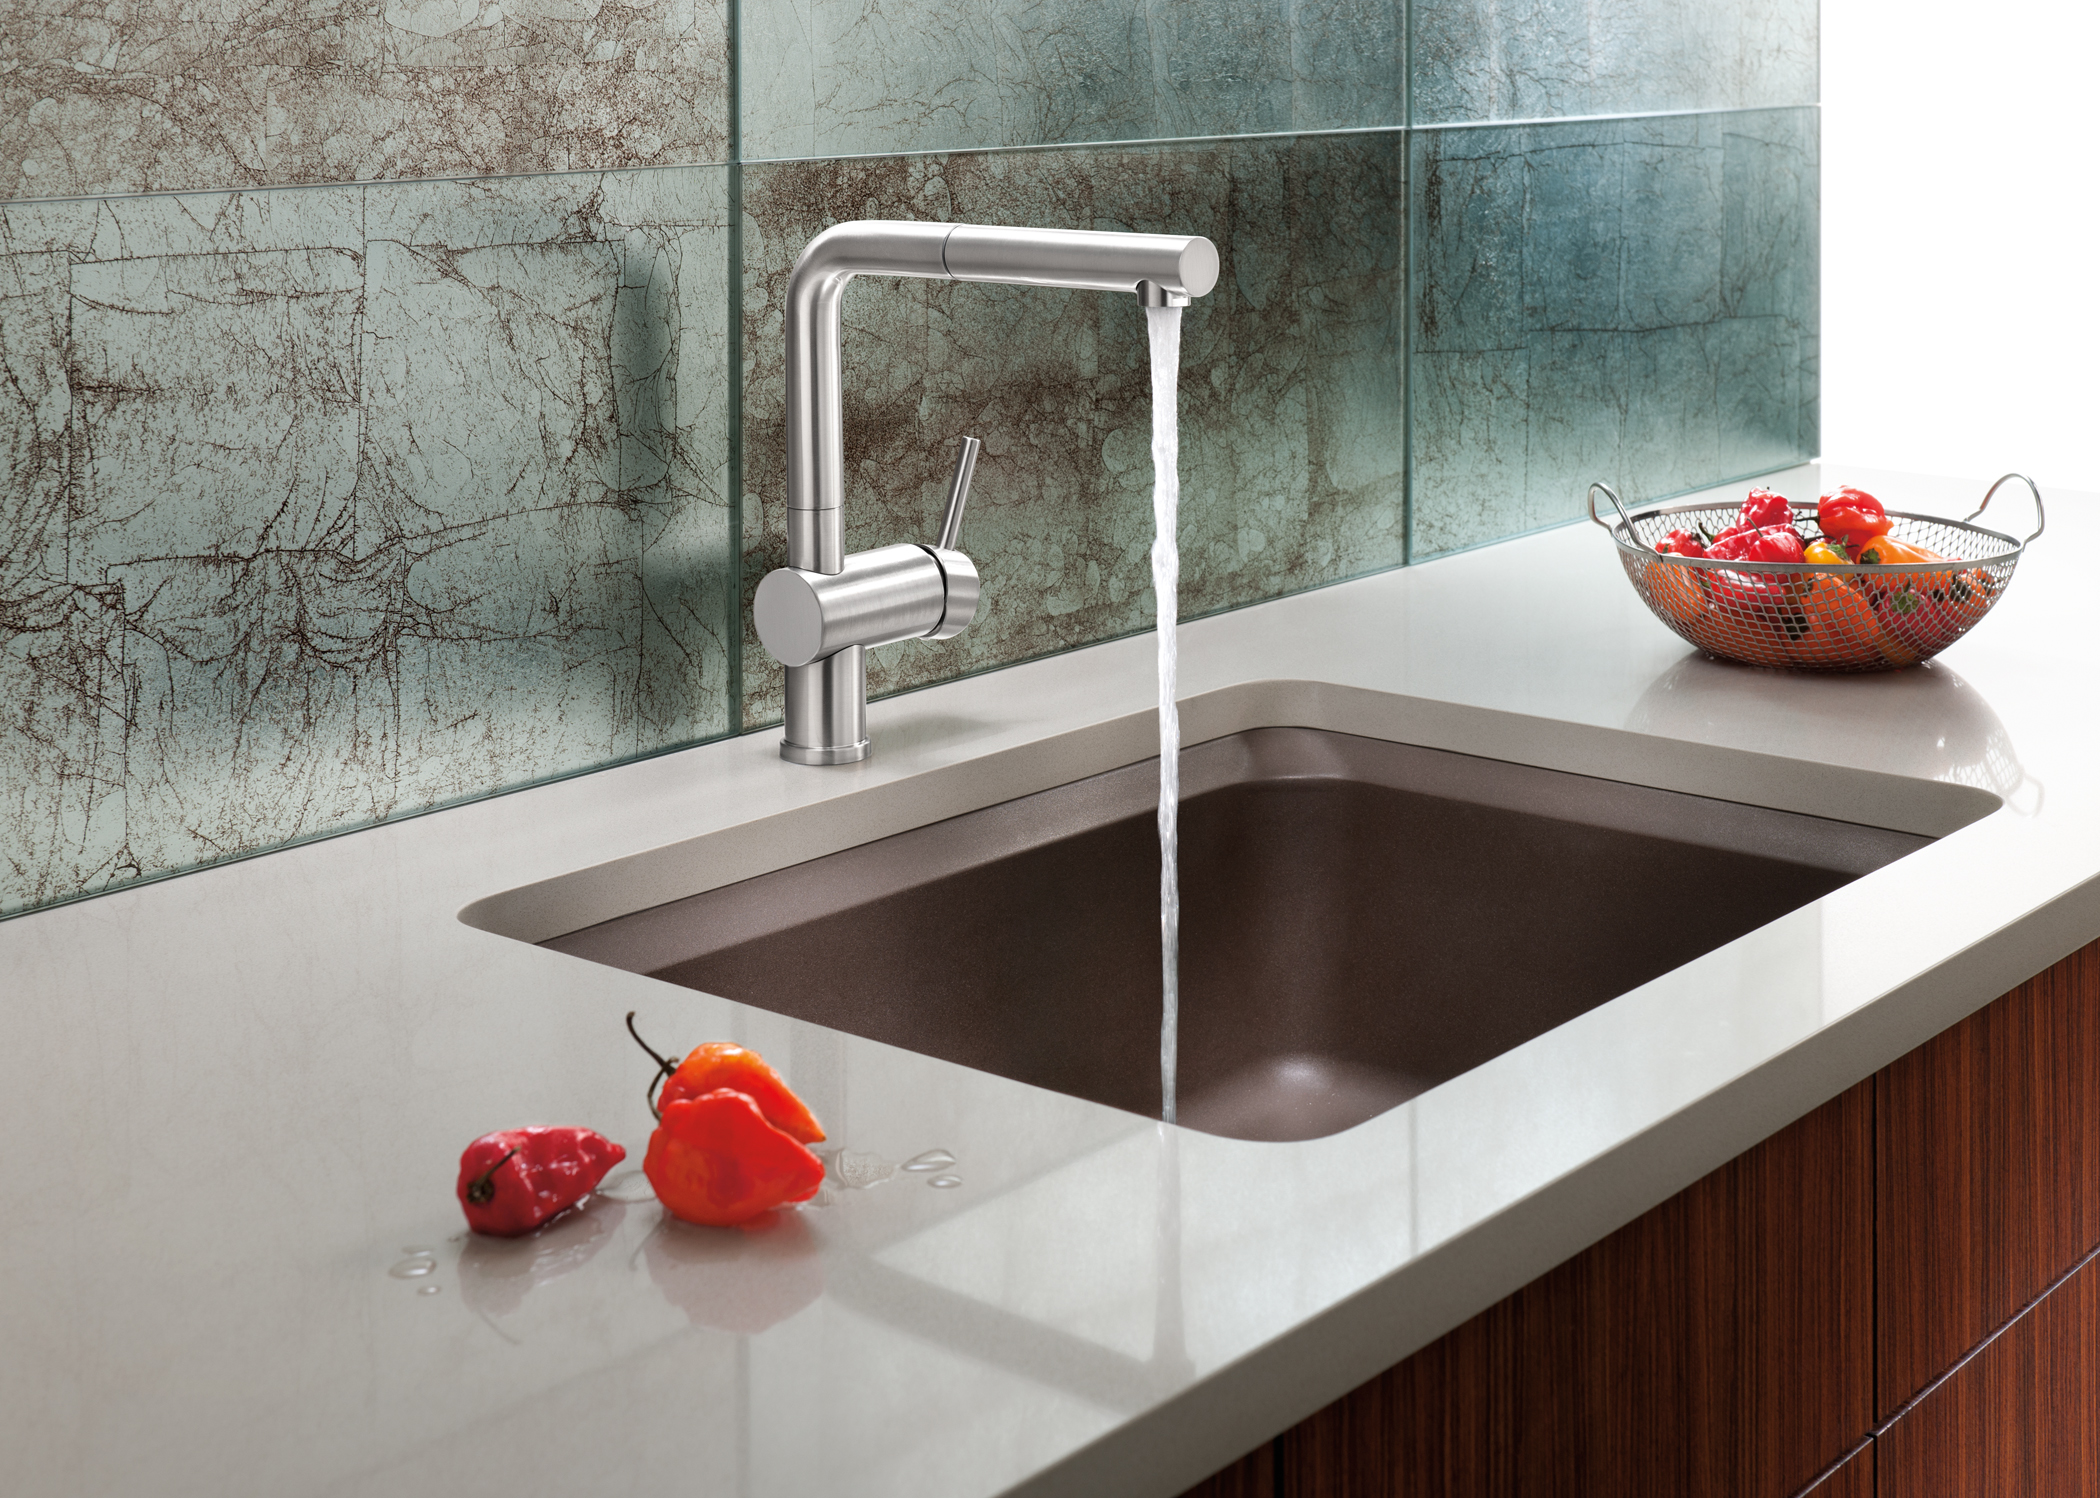 The new BLANCO SILGRANIT II VISION™ designer kitchen sink